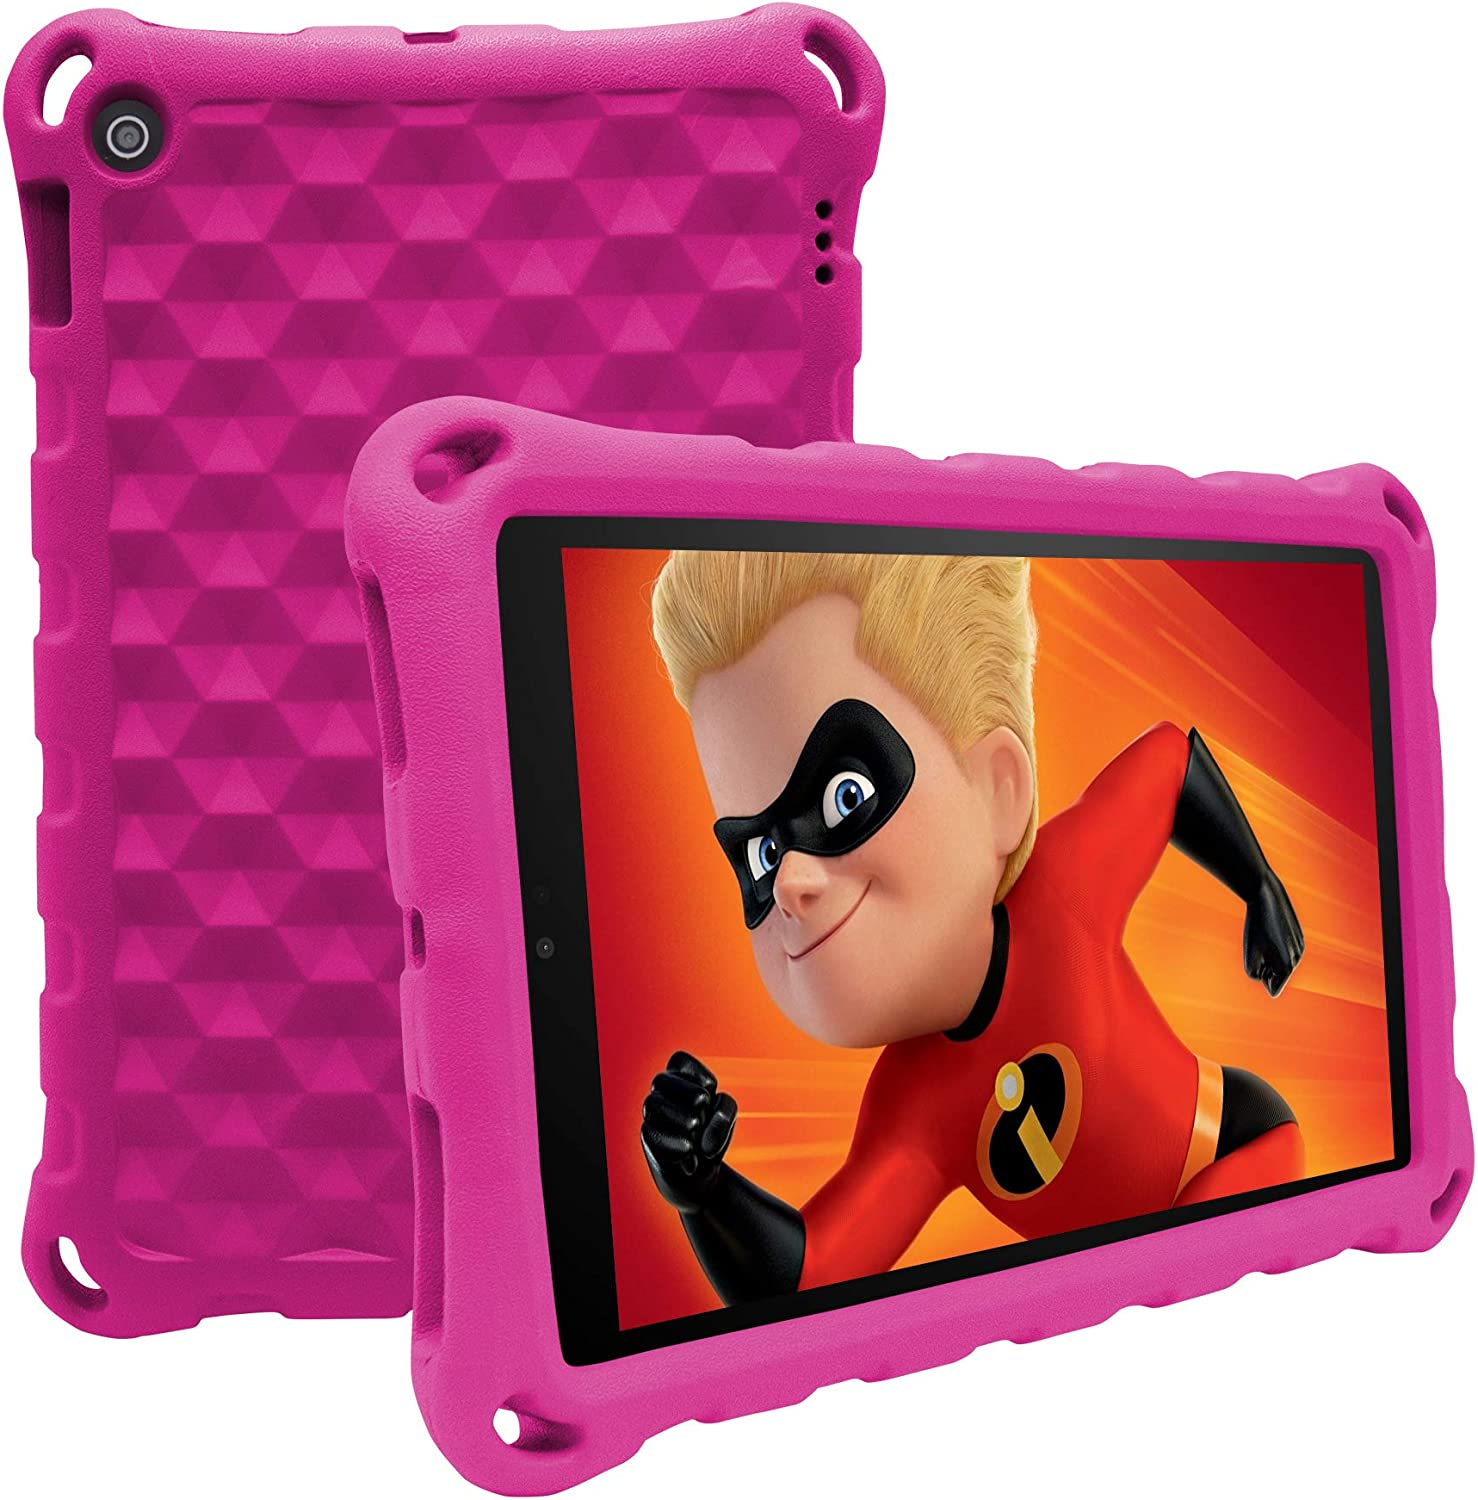 7 Tablet Case for Kids,7 Tablet 2019 Case (Compatible with 9th Generation 2019/7th Generation 2017) -ANTIKE Shockproof Light Weight Handle Kids Friendly Case for 7 Inch Tablet(Rose)